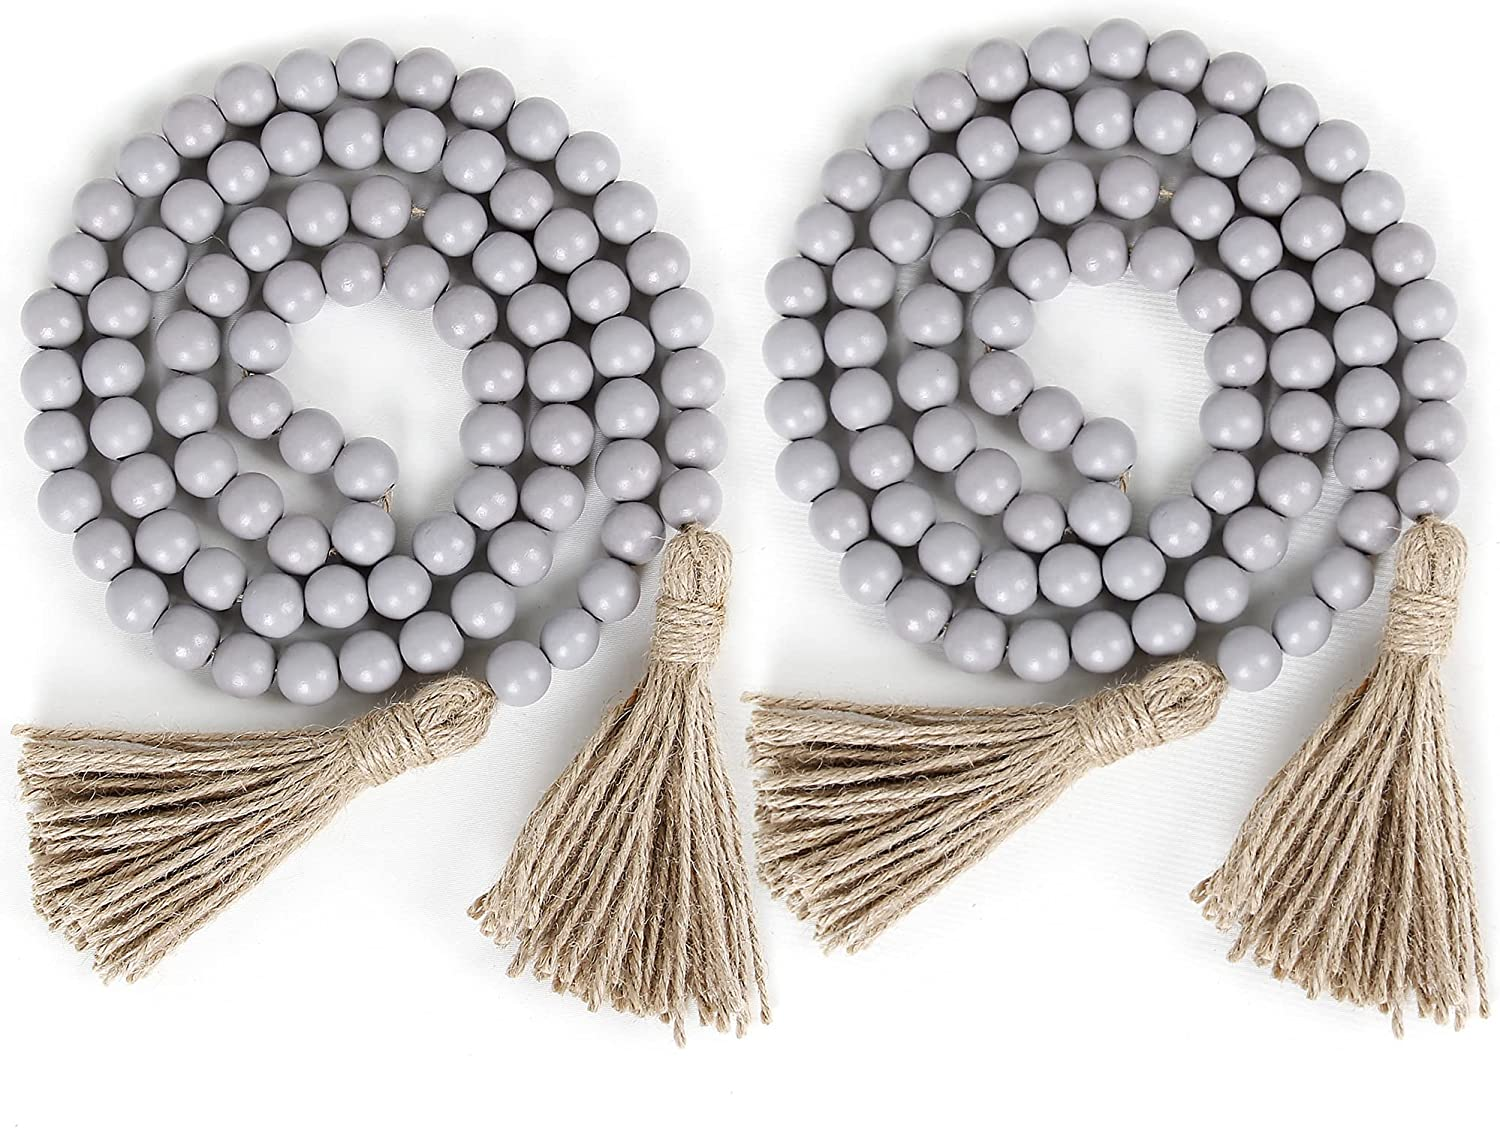 2Pcs Farmhouse Beads, 58in Wood Bead Garland with Tassels,Boho Beads Garland Tiered Tray Decor Rustic Country Decor(Grey)